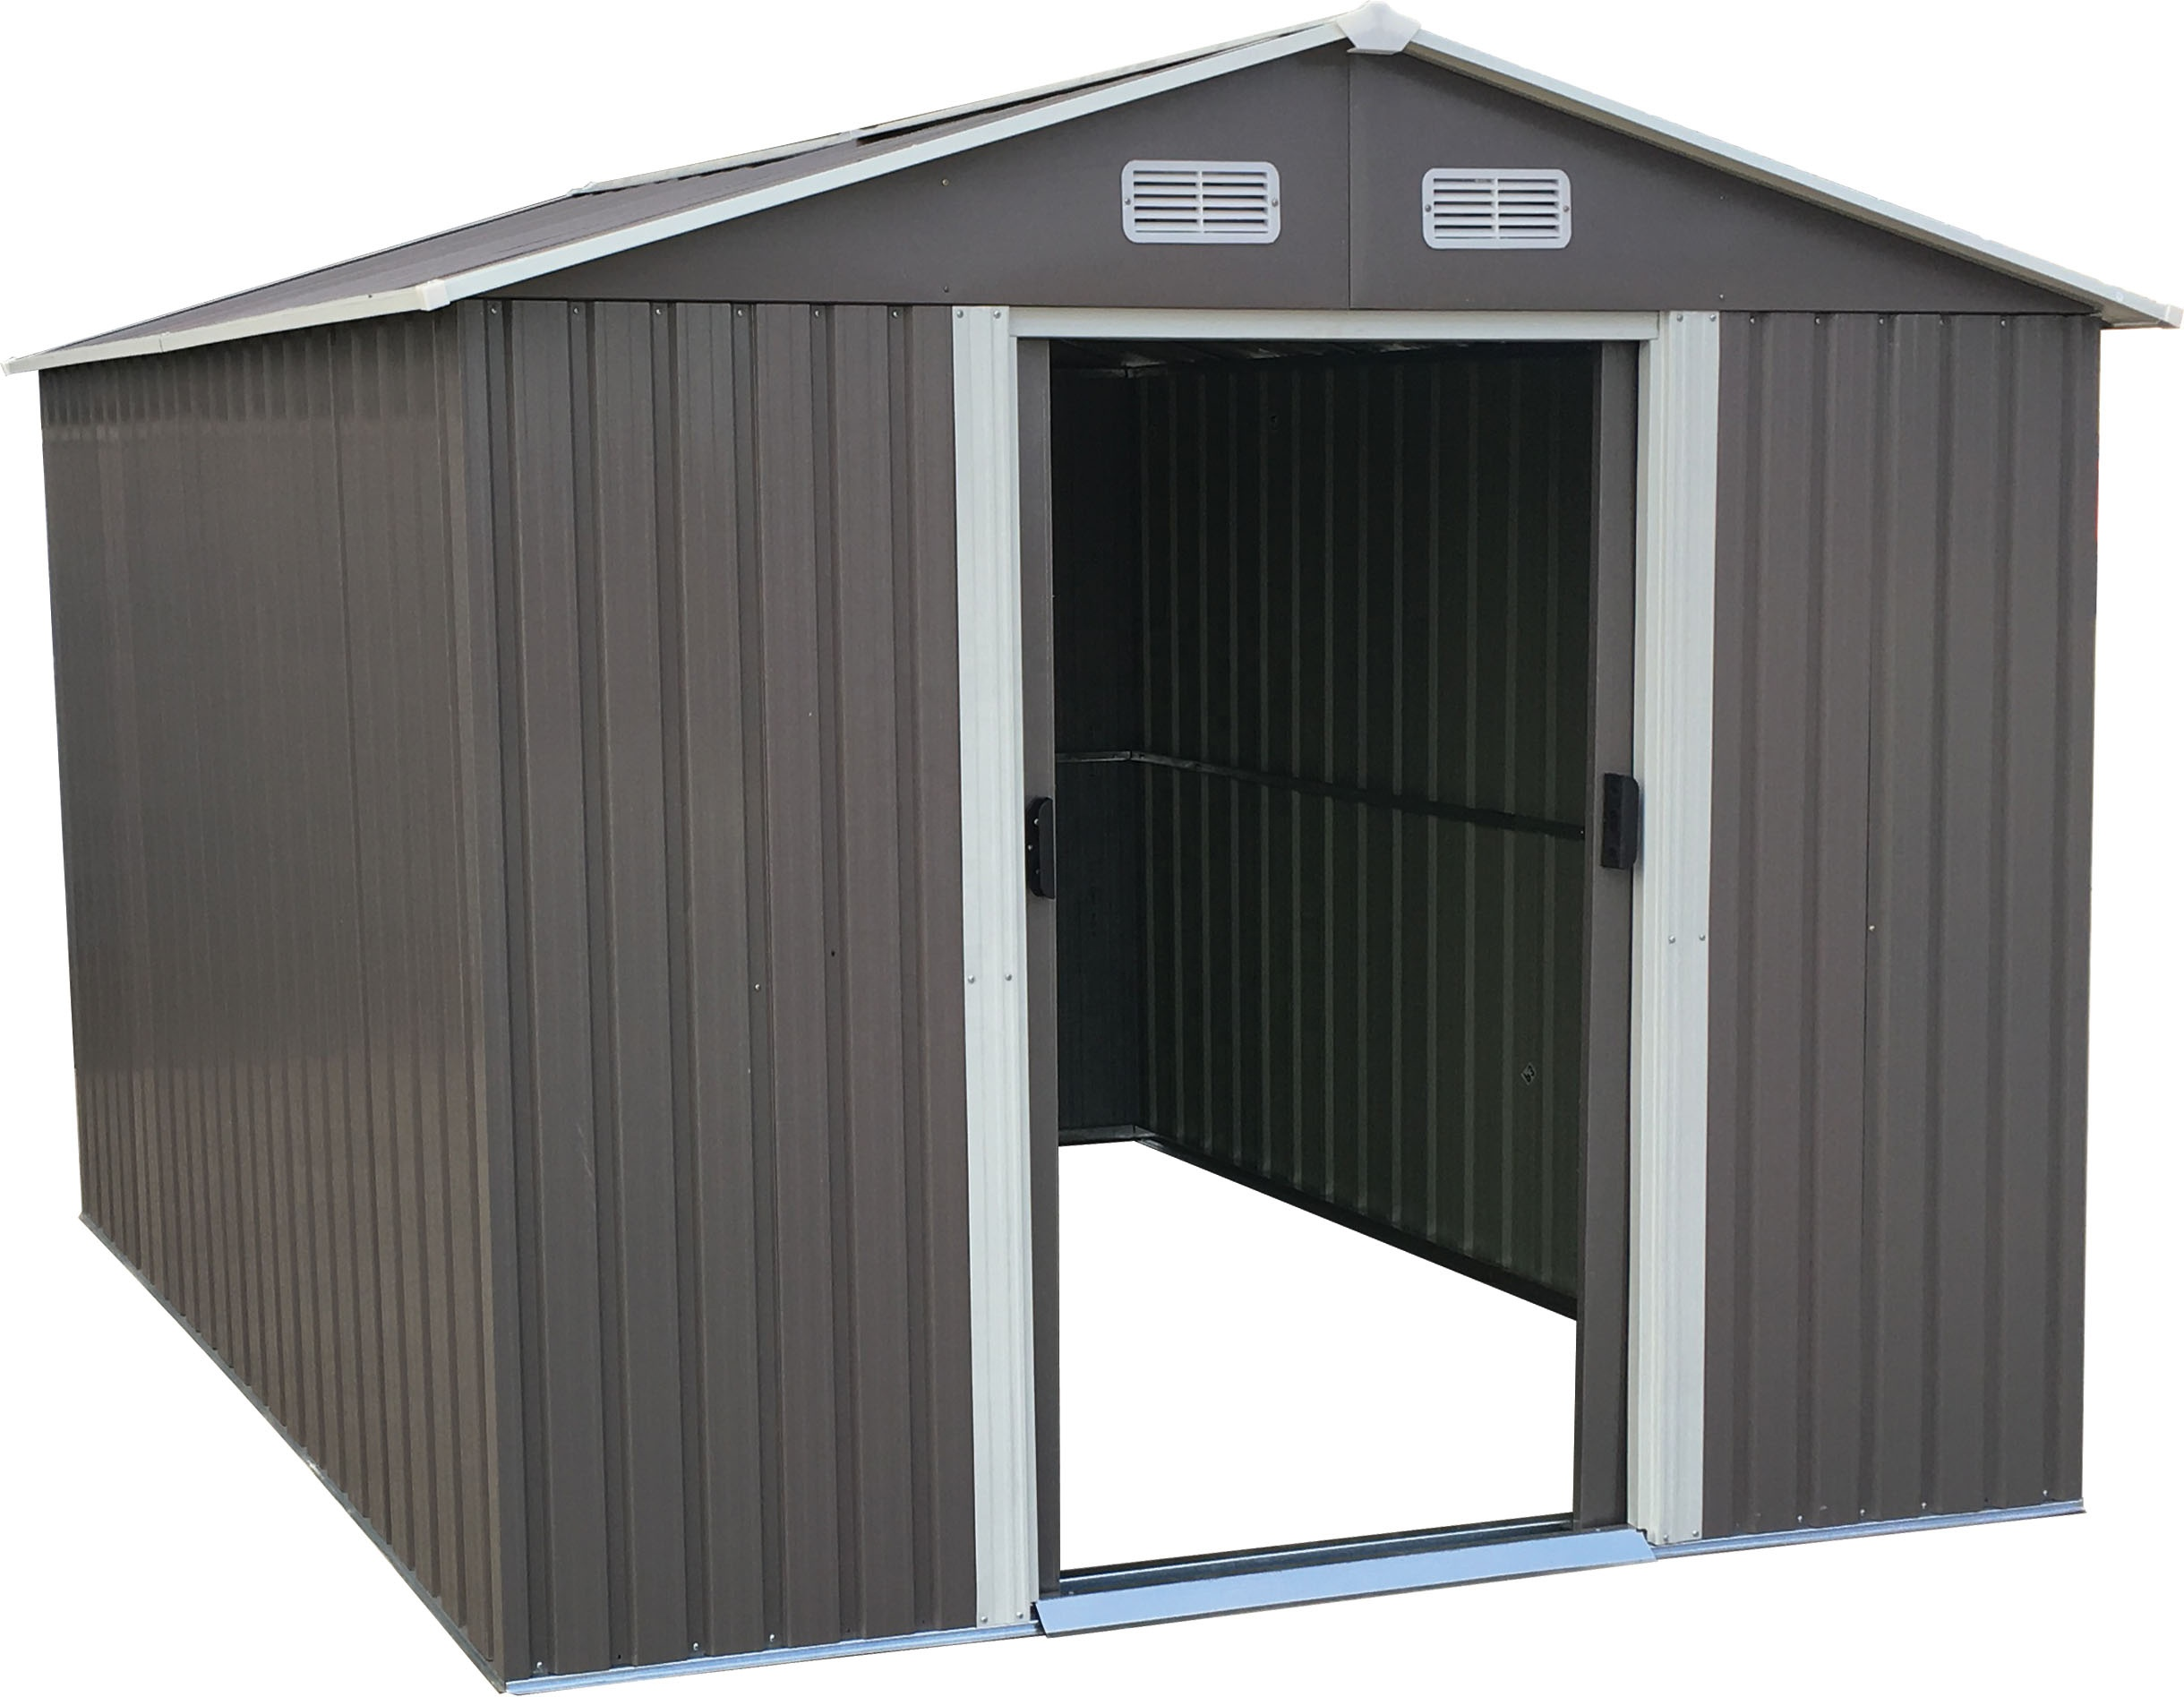 Chinese Garden Shed Sheds Outdoor Storage 10x8ft Double Door Workshop